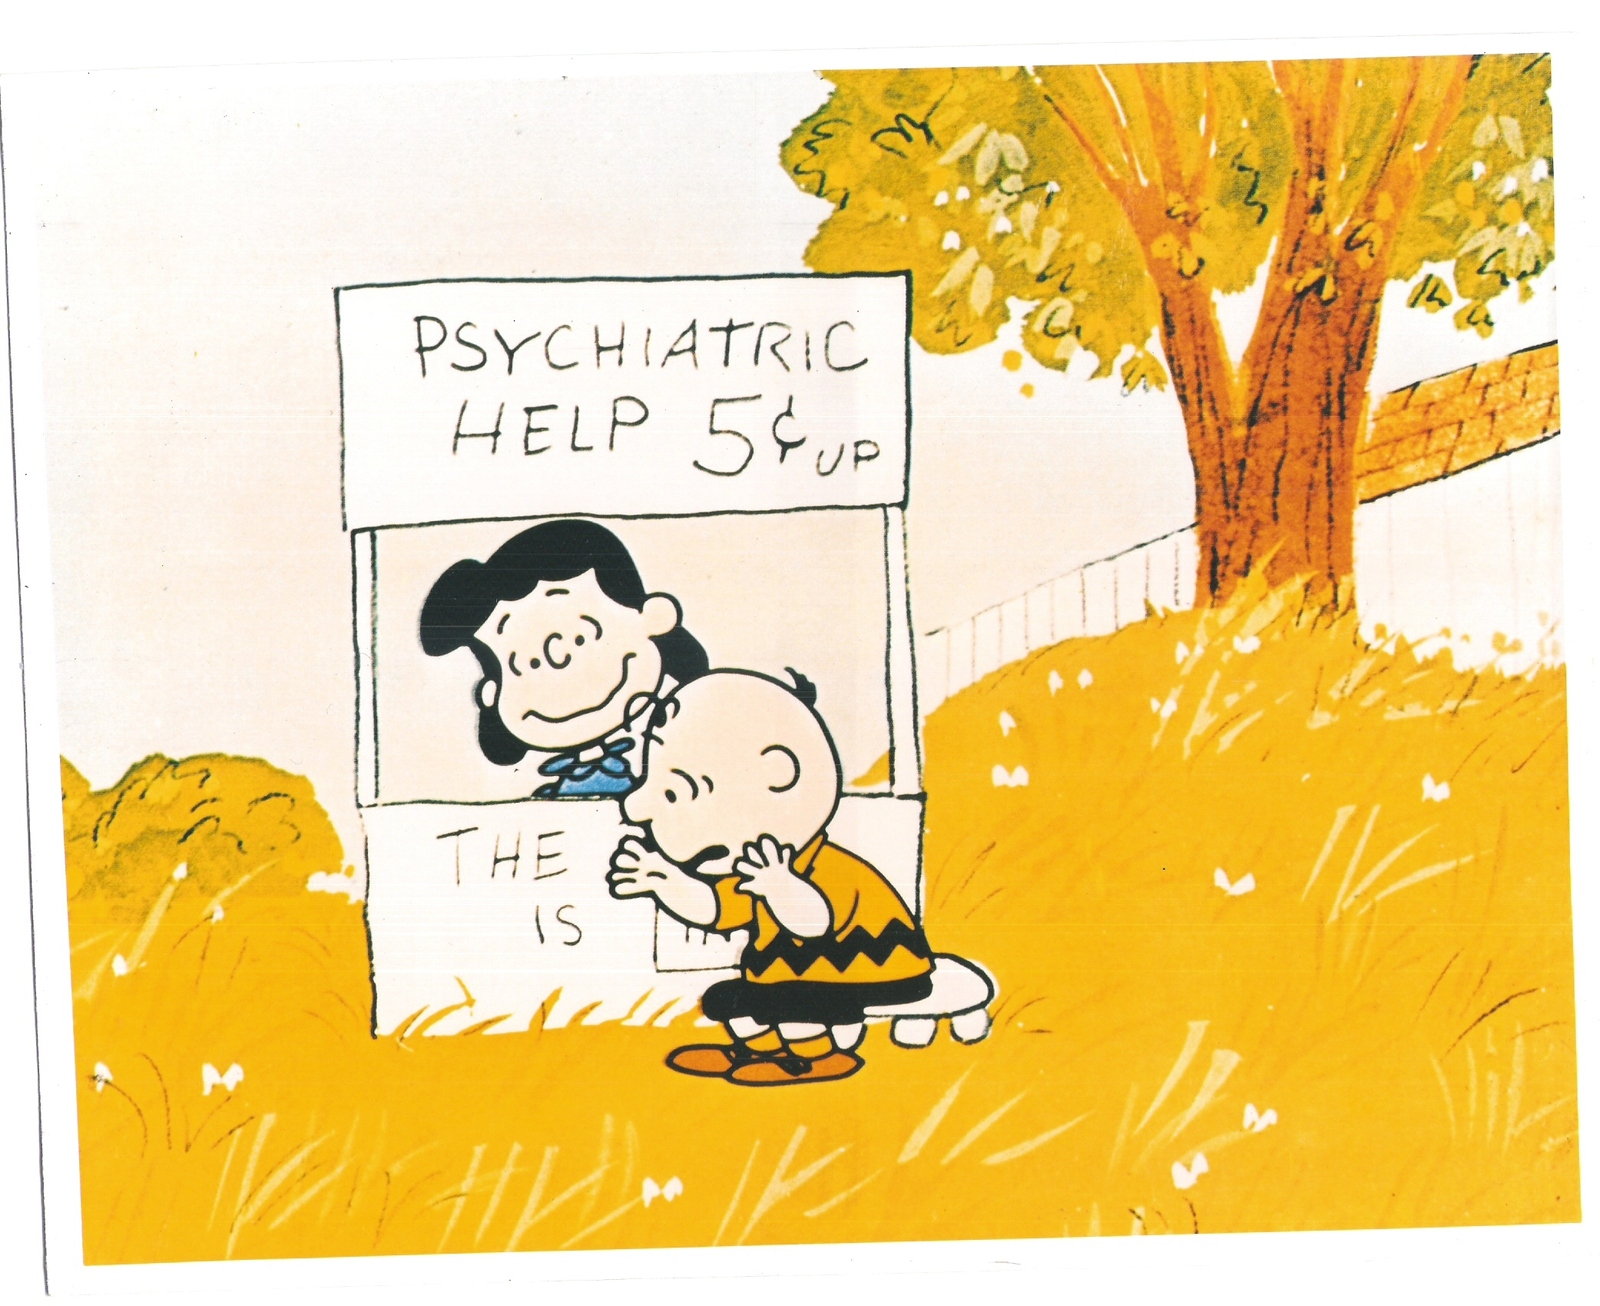 Peanuts Psychiatric Help Charlie Brown Comic Strip Vintage 8X10 Color TV Photo